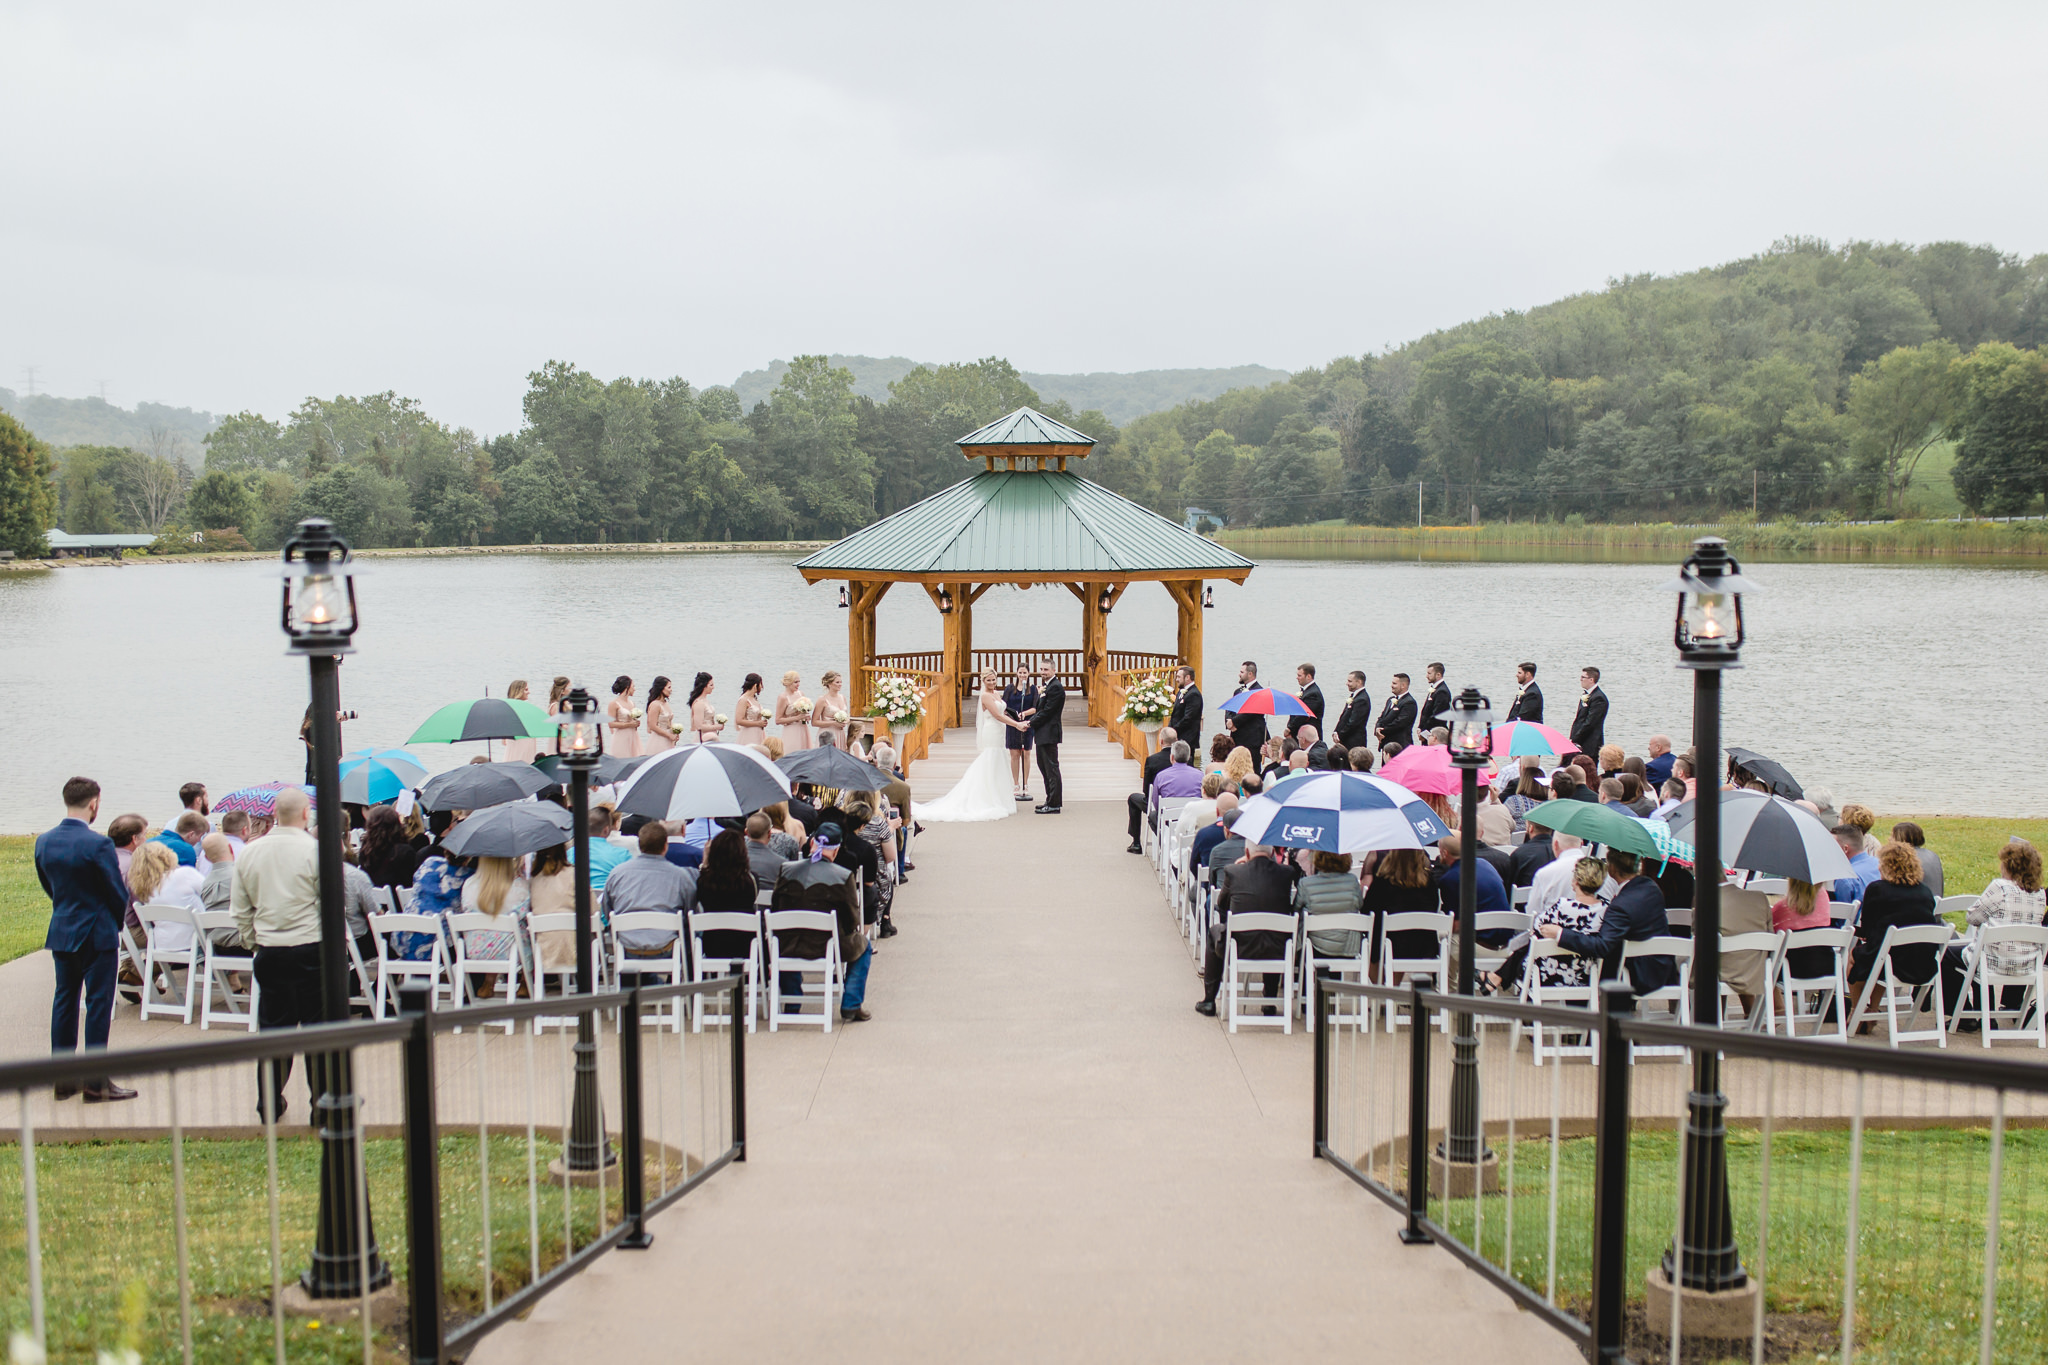 Rainy outdoor wedding ceremony at the Gathering Place at Darlington Lake